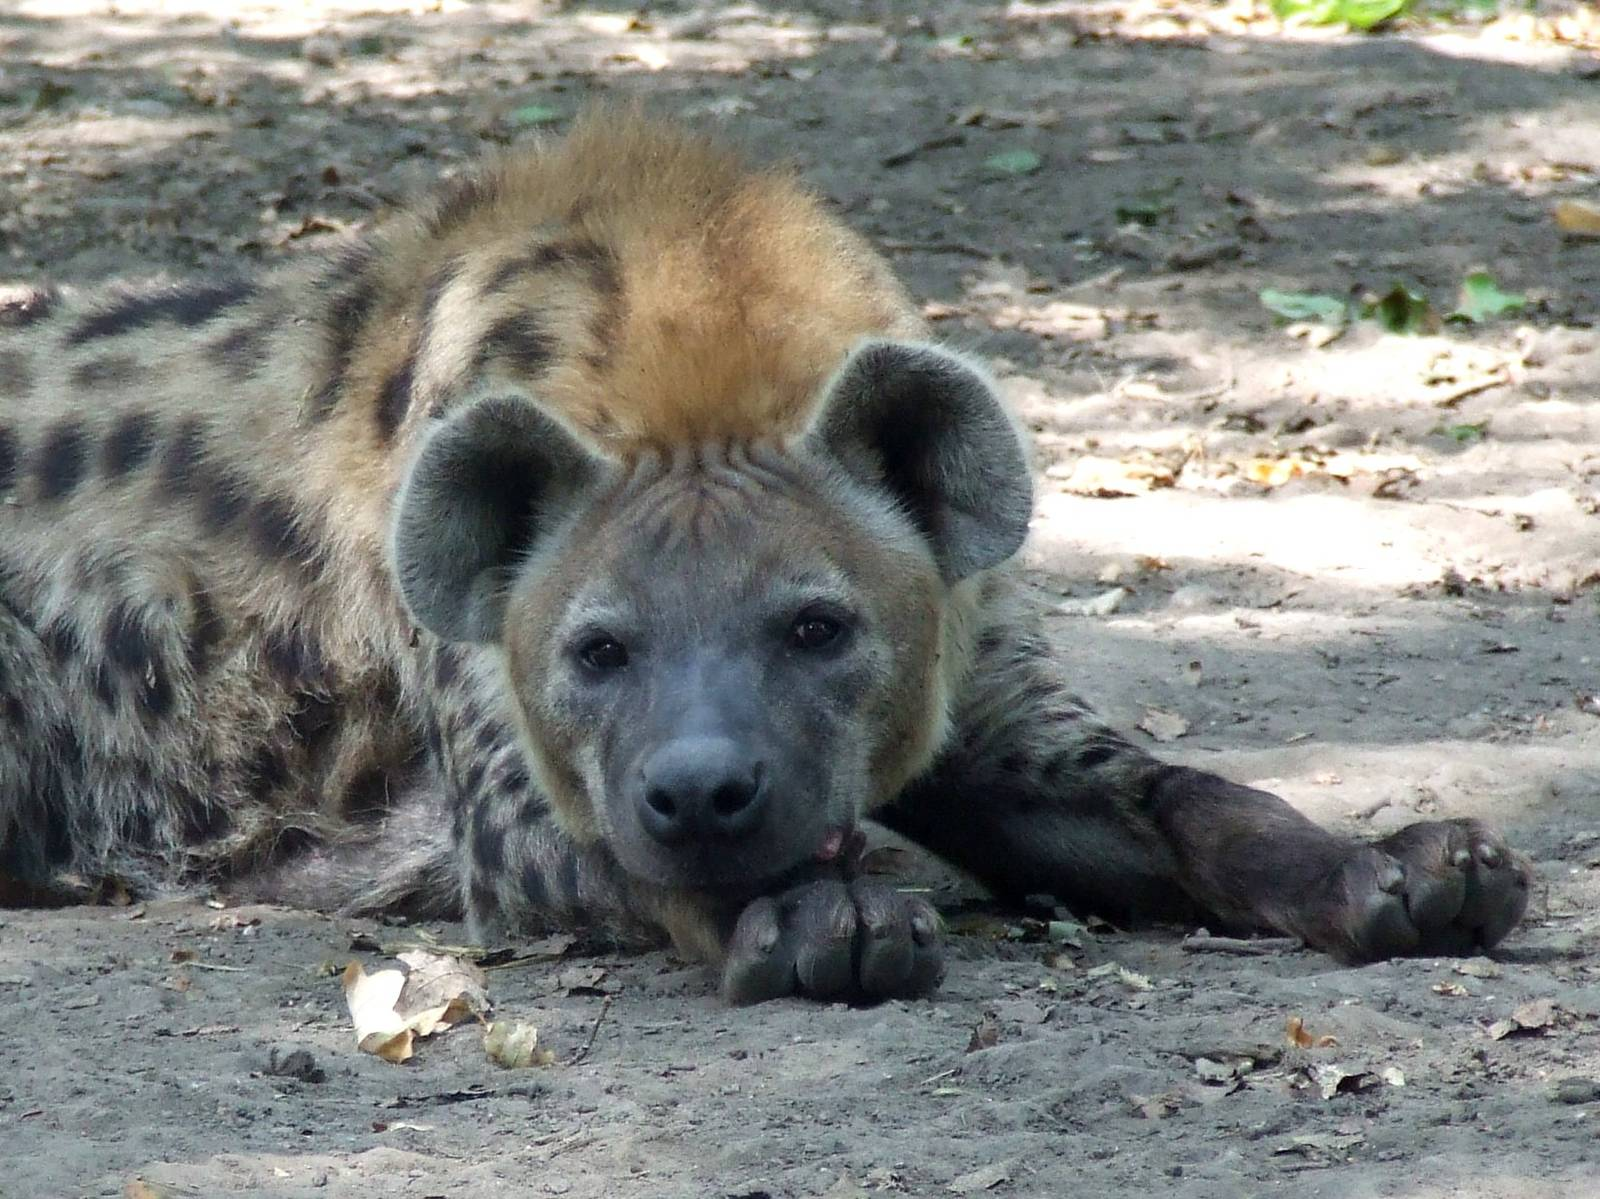 Male Spotted hyena @ Szeged Zoo, Hungary | ZooChat